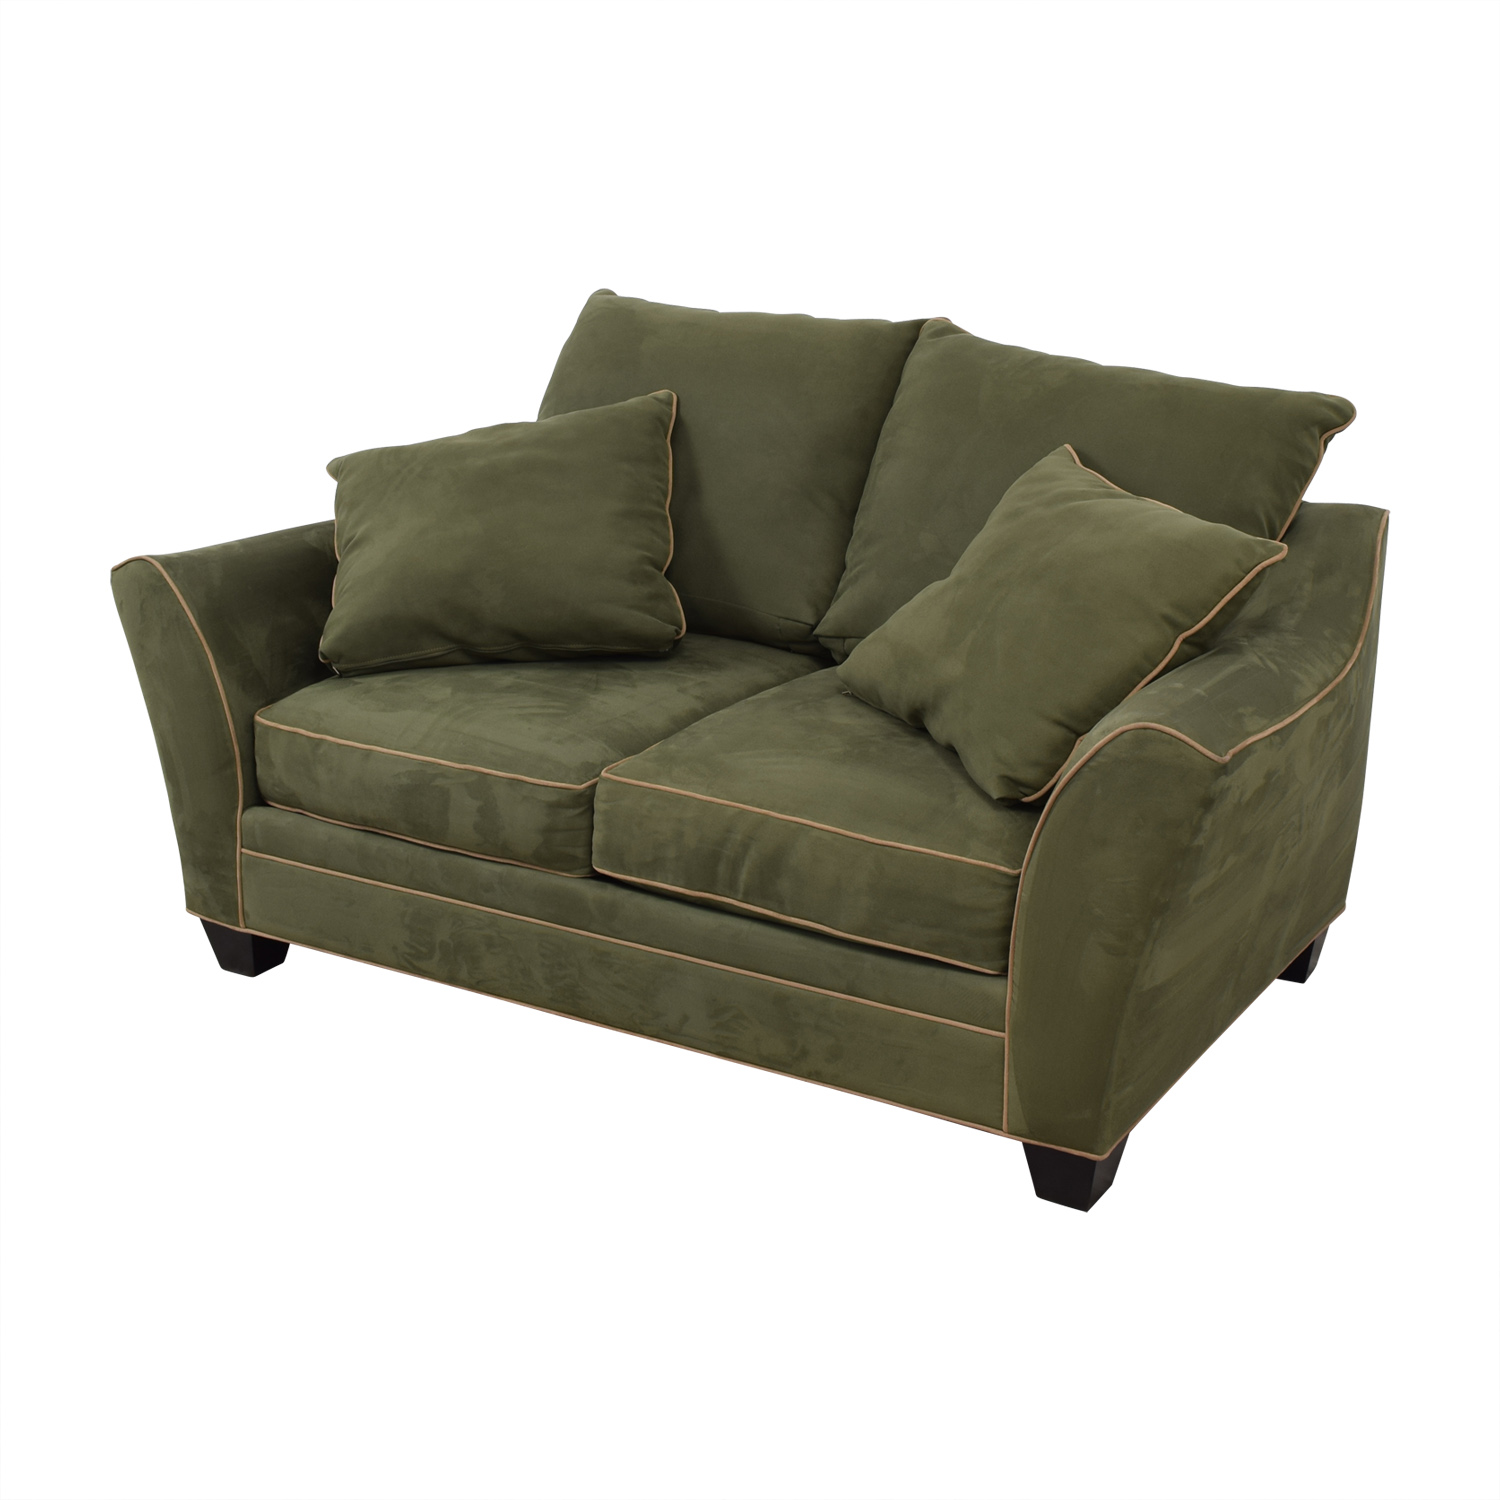 Raymour & Flanigan Raymour & Flanigan Briarwood Brown Two-Cushion Loveseat price